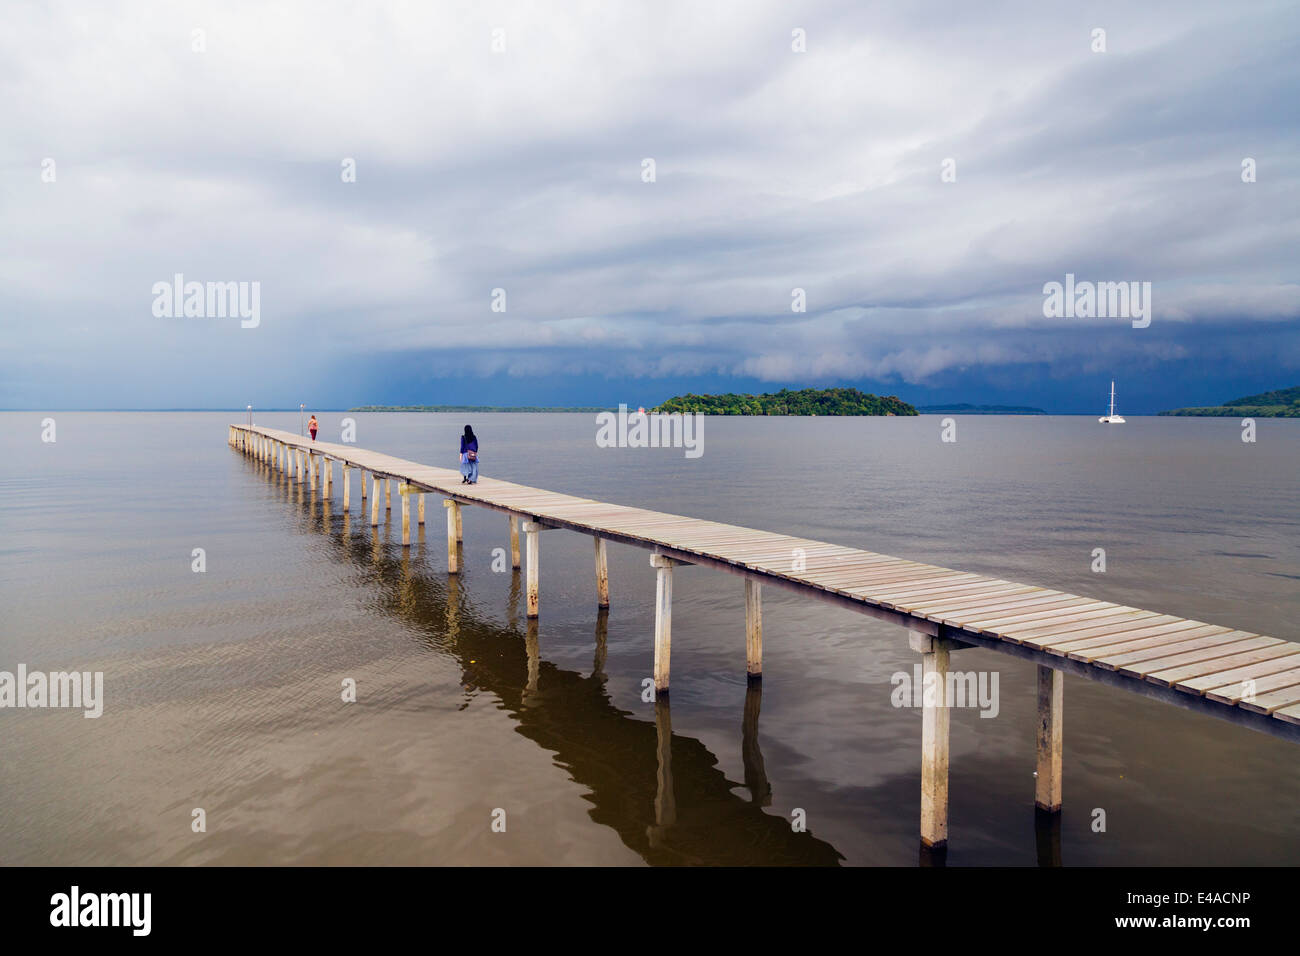 South East Asia, Kingdom of Brunei, girls on pier - Stock Image